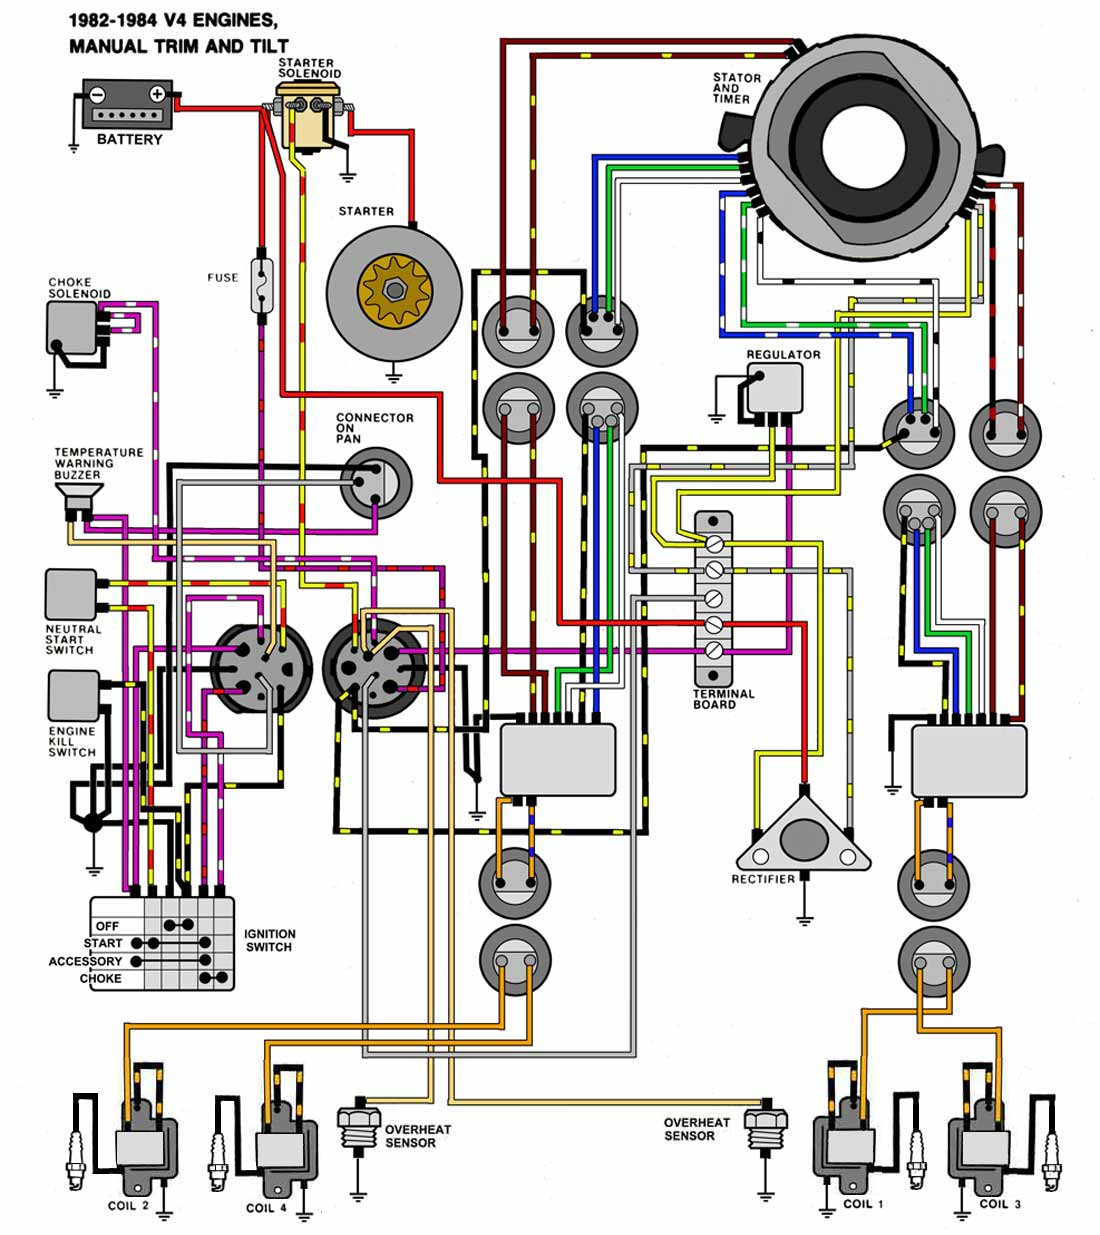 82_84_V4_NOTNT mastertech marine evinrude johnson outboard wiring diagrams  at gsmx.co